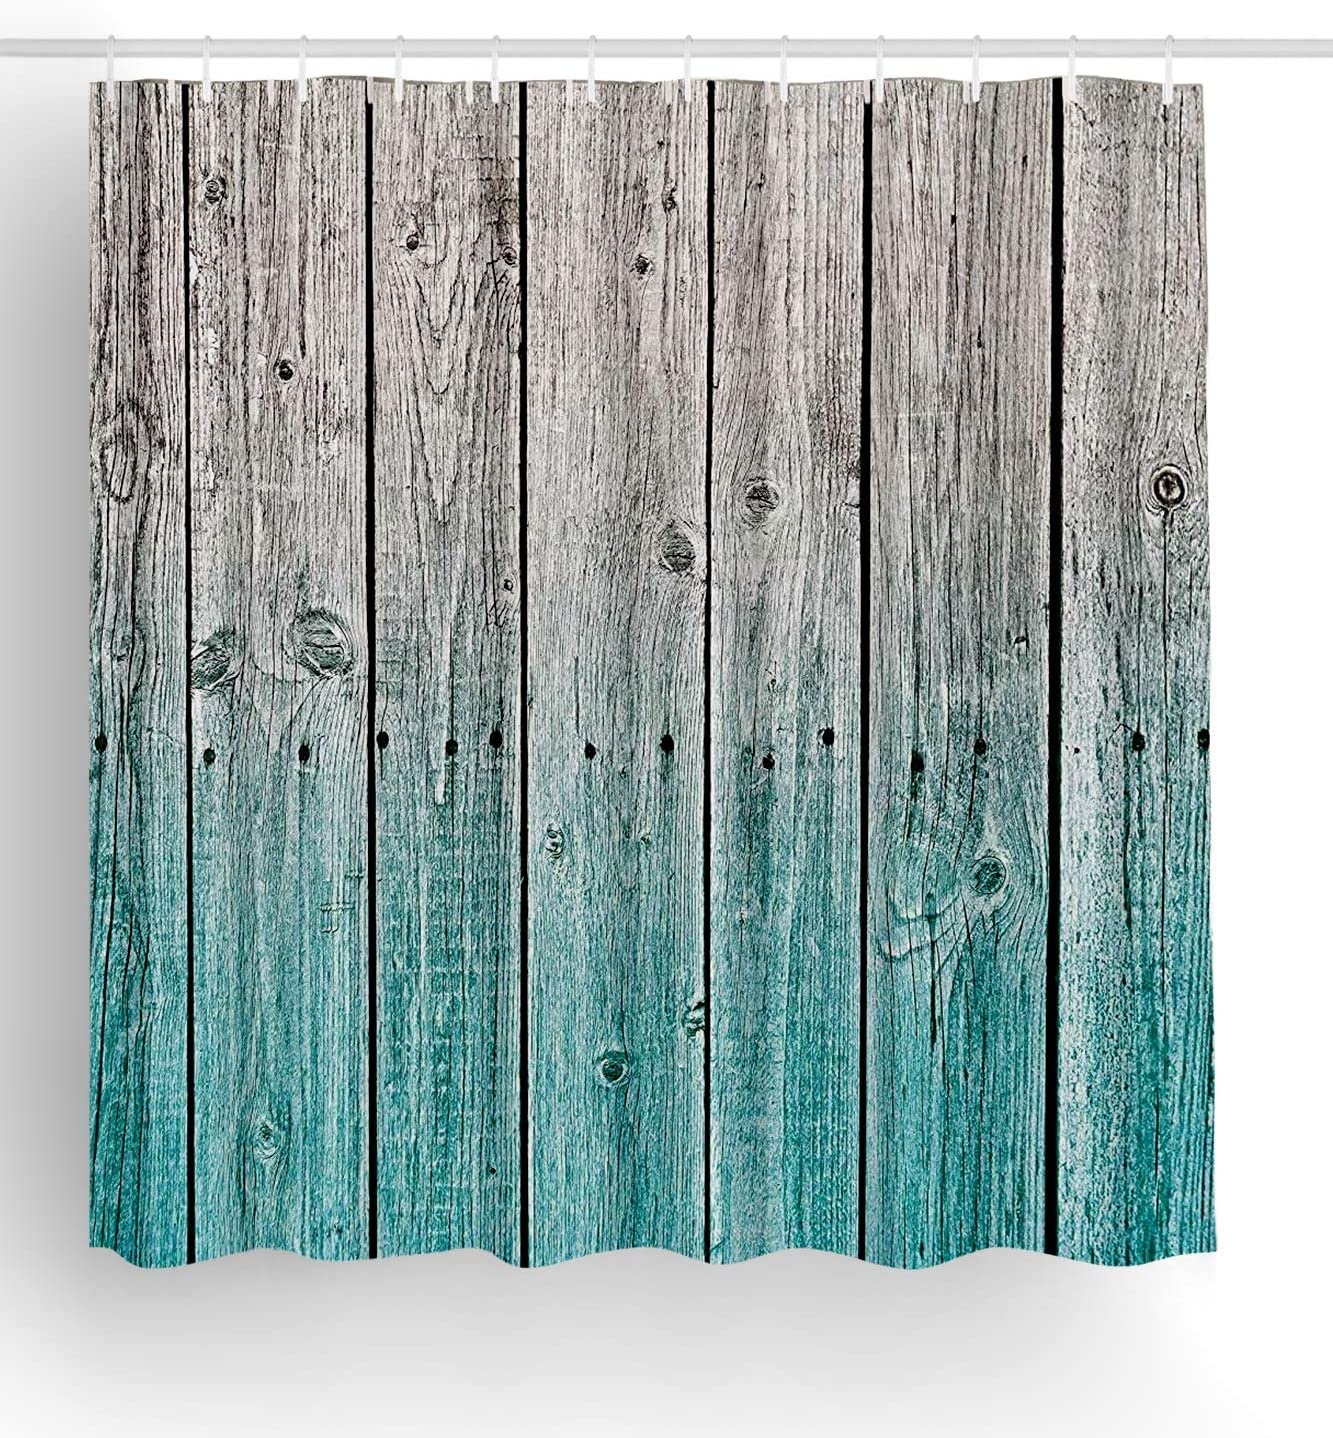 Jagfhhs Rustic Wood Panels Background with Digital Tones Effect Country House Teal Grey Long Shower Curtains with Hooks Home Dorm Hotel Bath Decor